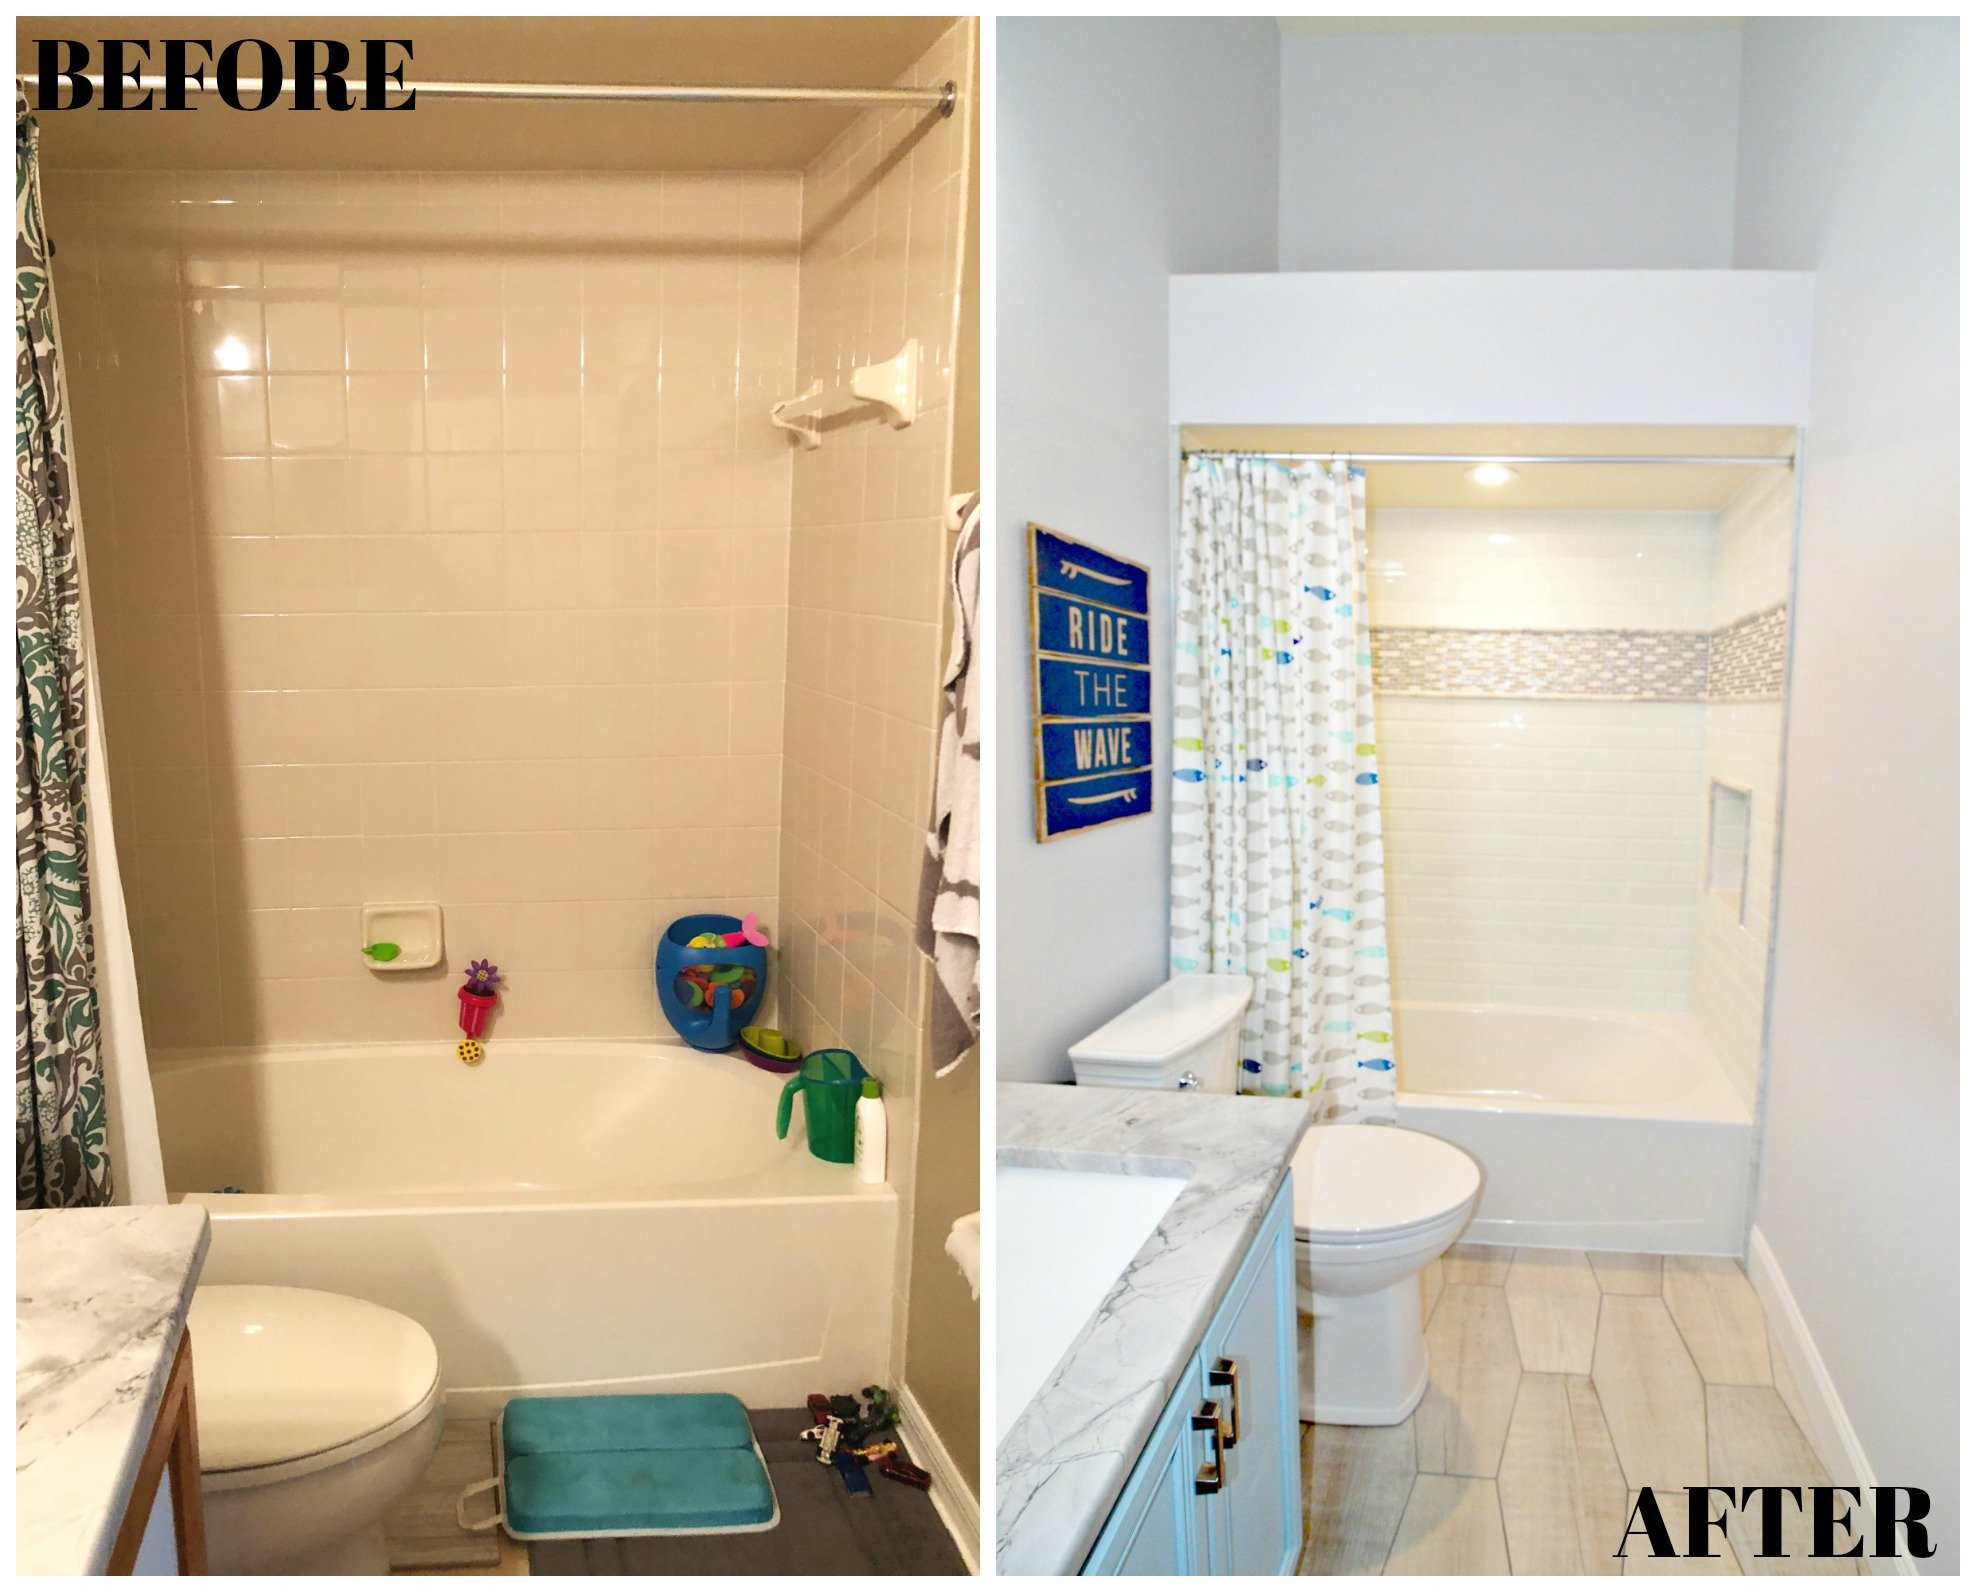 Kids Bathroom Renovation BEFORE & AFTER Bathroom Tile Floor and Shower